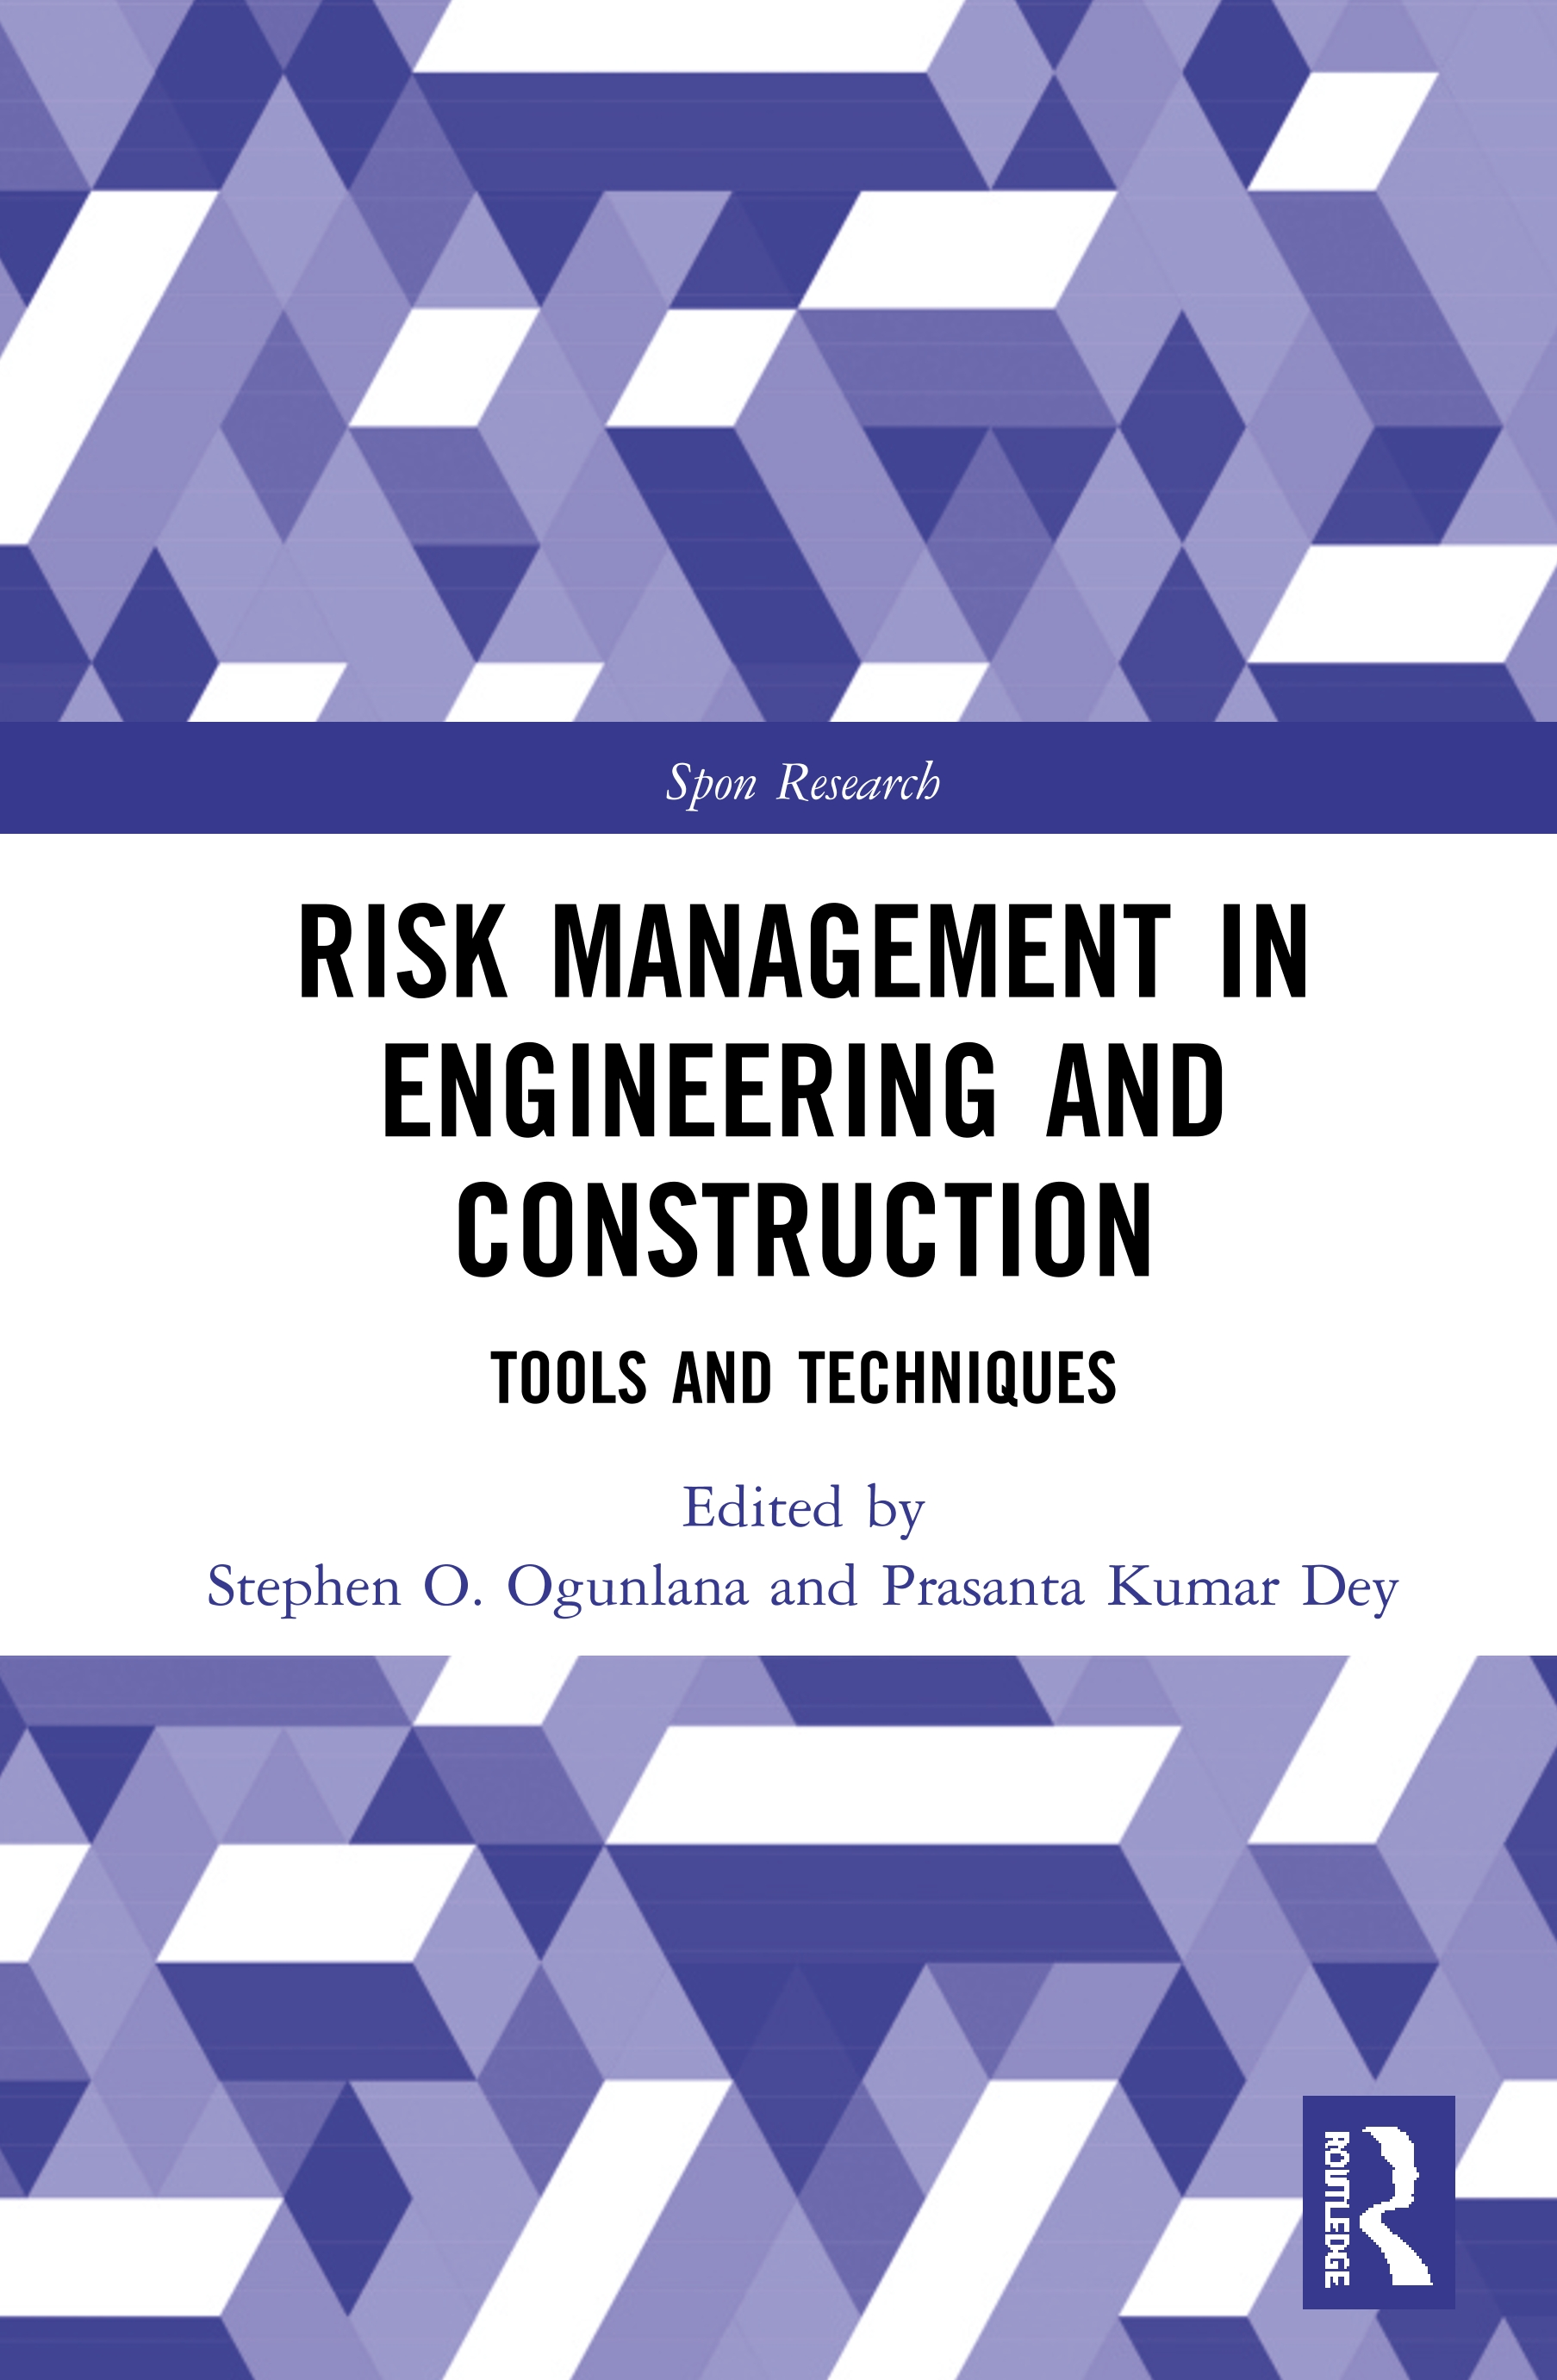 Risk Management in Engineering and Construction: Tools and Techniques book cover